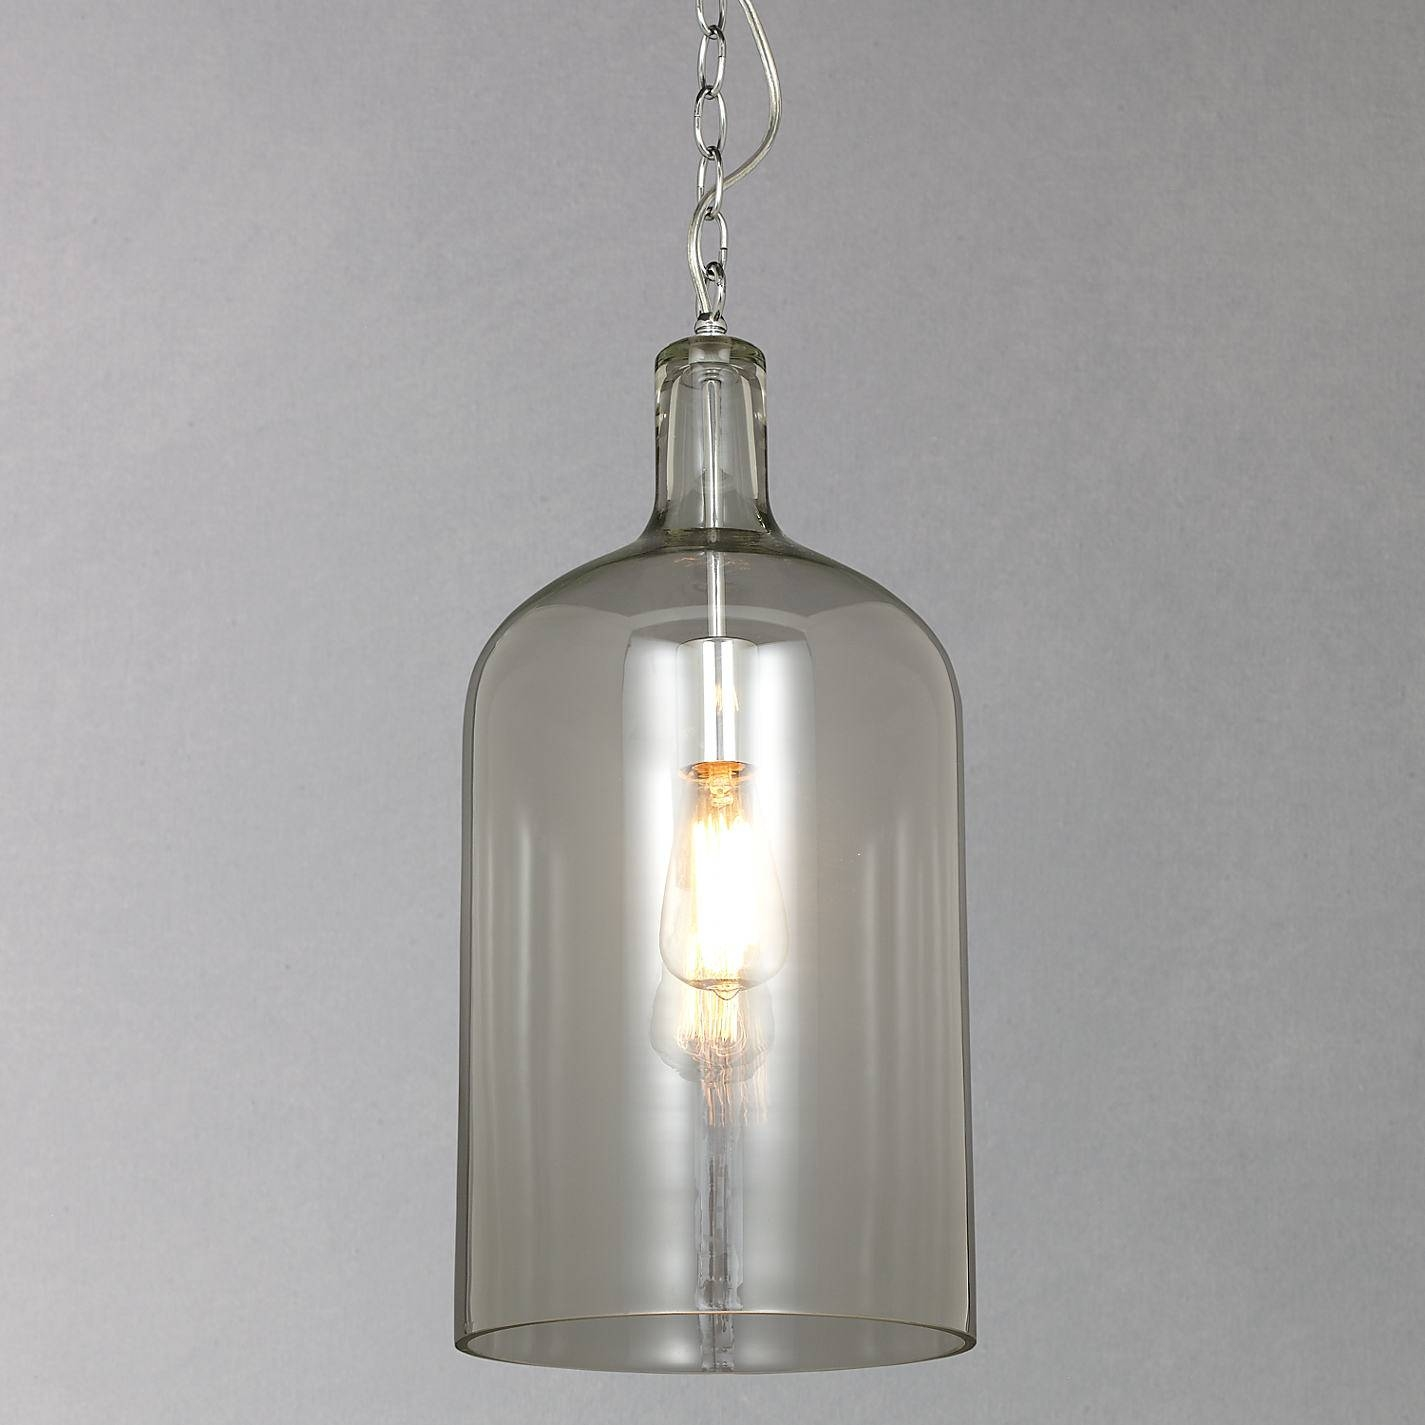 Pendant Light Glass - Baby-Exit regarding John Lewis Lighting Pendants (Image 14 of 15)